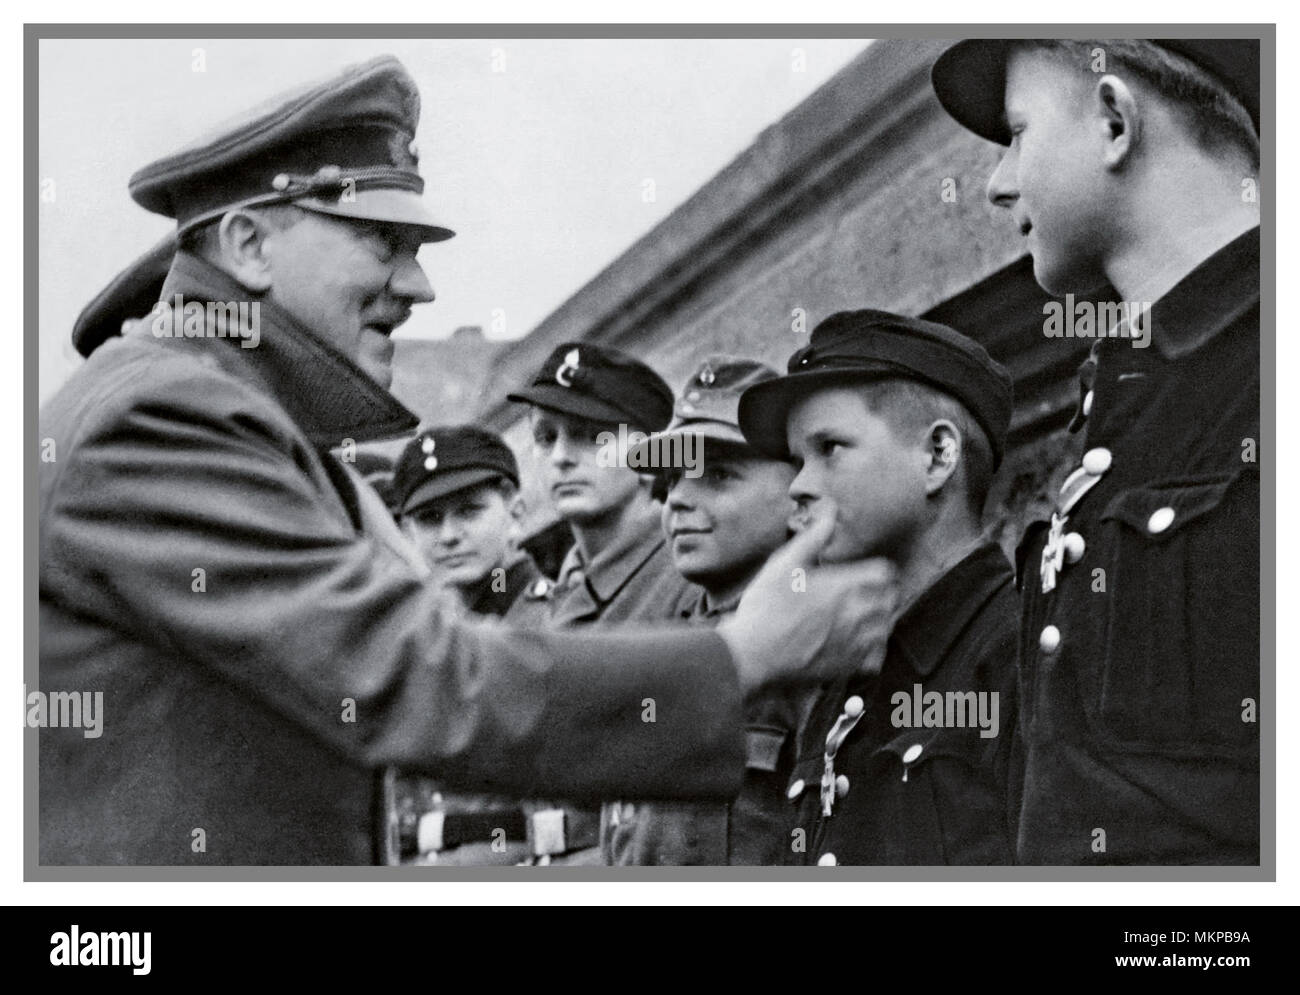 1945 Vintage German WW2 Propaganda Image Nazi leader Adolf Hitler  making probably last public appearance outside his Berlin Bunker meeting and awarding medals to loyal totally misguided Hitler Youth members.  Boys used callously as cannon fodder against Russian encirclement April 1945 WW2 - Stock Image